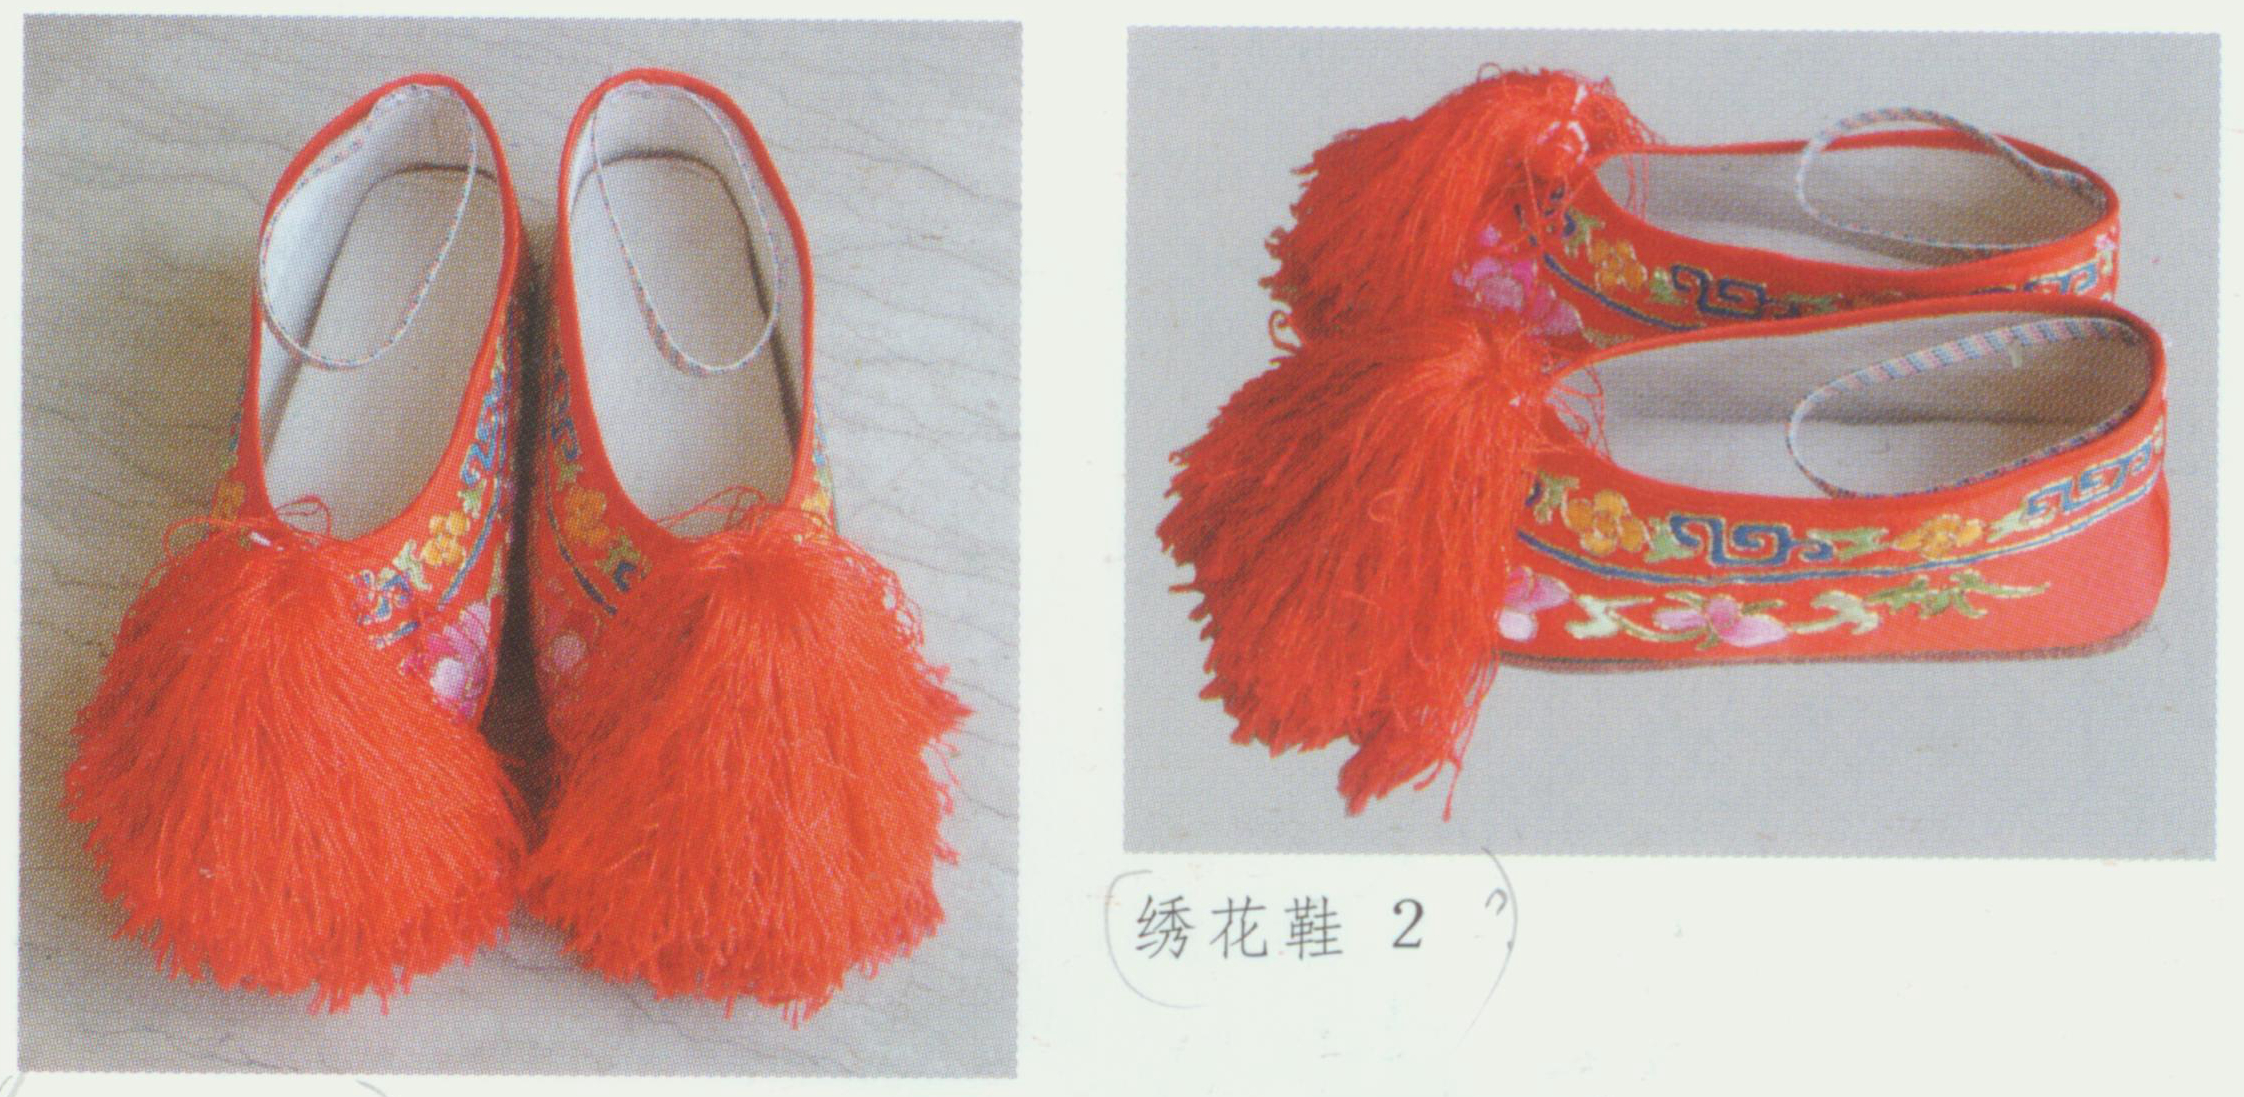 Caixie   embroidered flat slippers for women in red, pink,  cerulean blue and mint green。The toecap is attached with calabash-shaped tassels with leather or cloth soles.